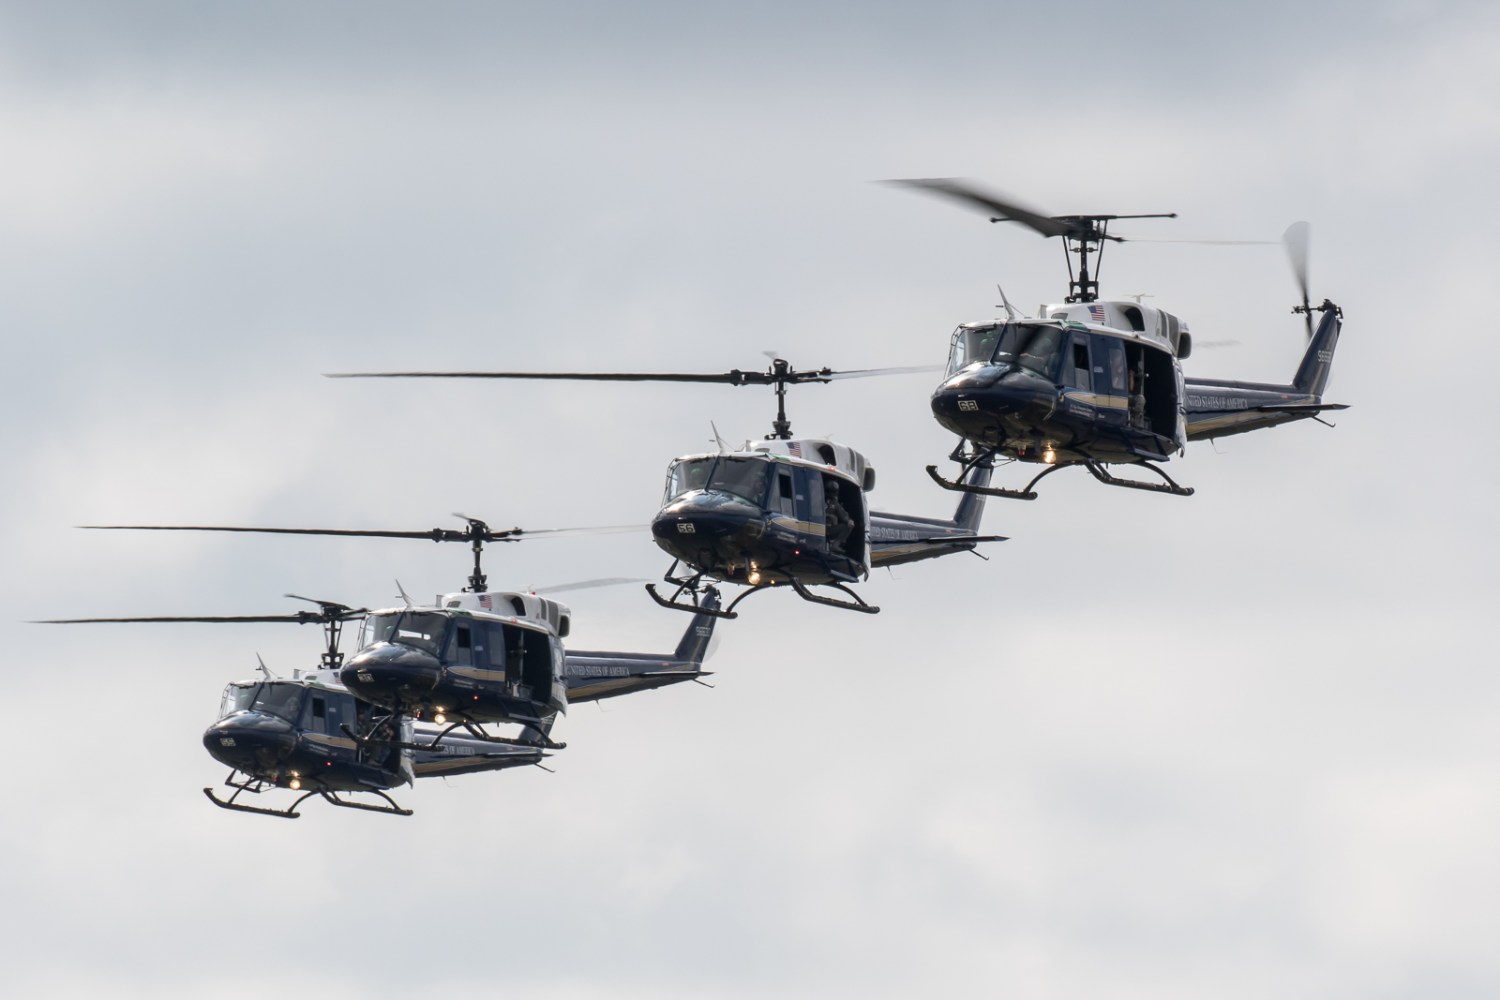 © Adam Duffield - Quartet of UH-1H's of 1st Helicopter Squadron - Joint Base Andrews Air Show 2017